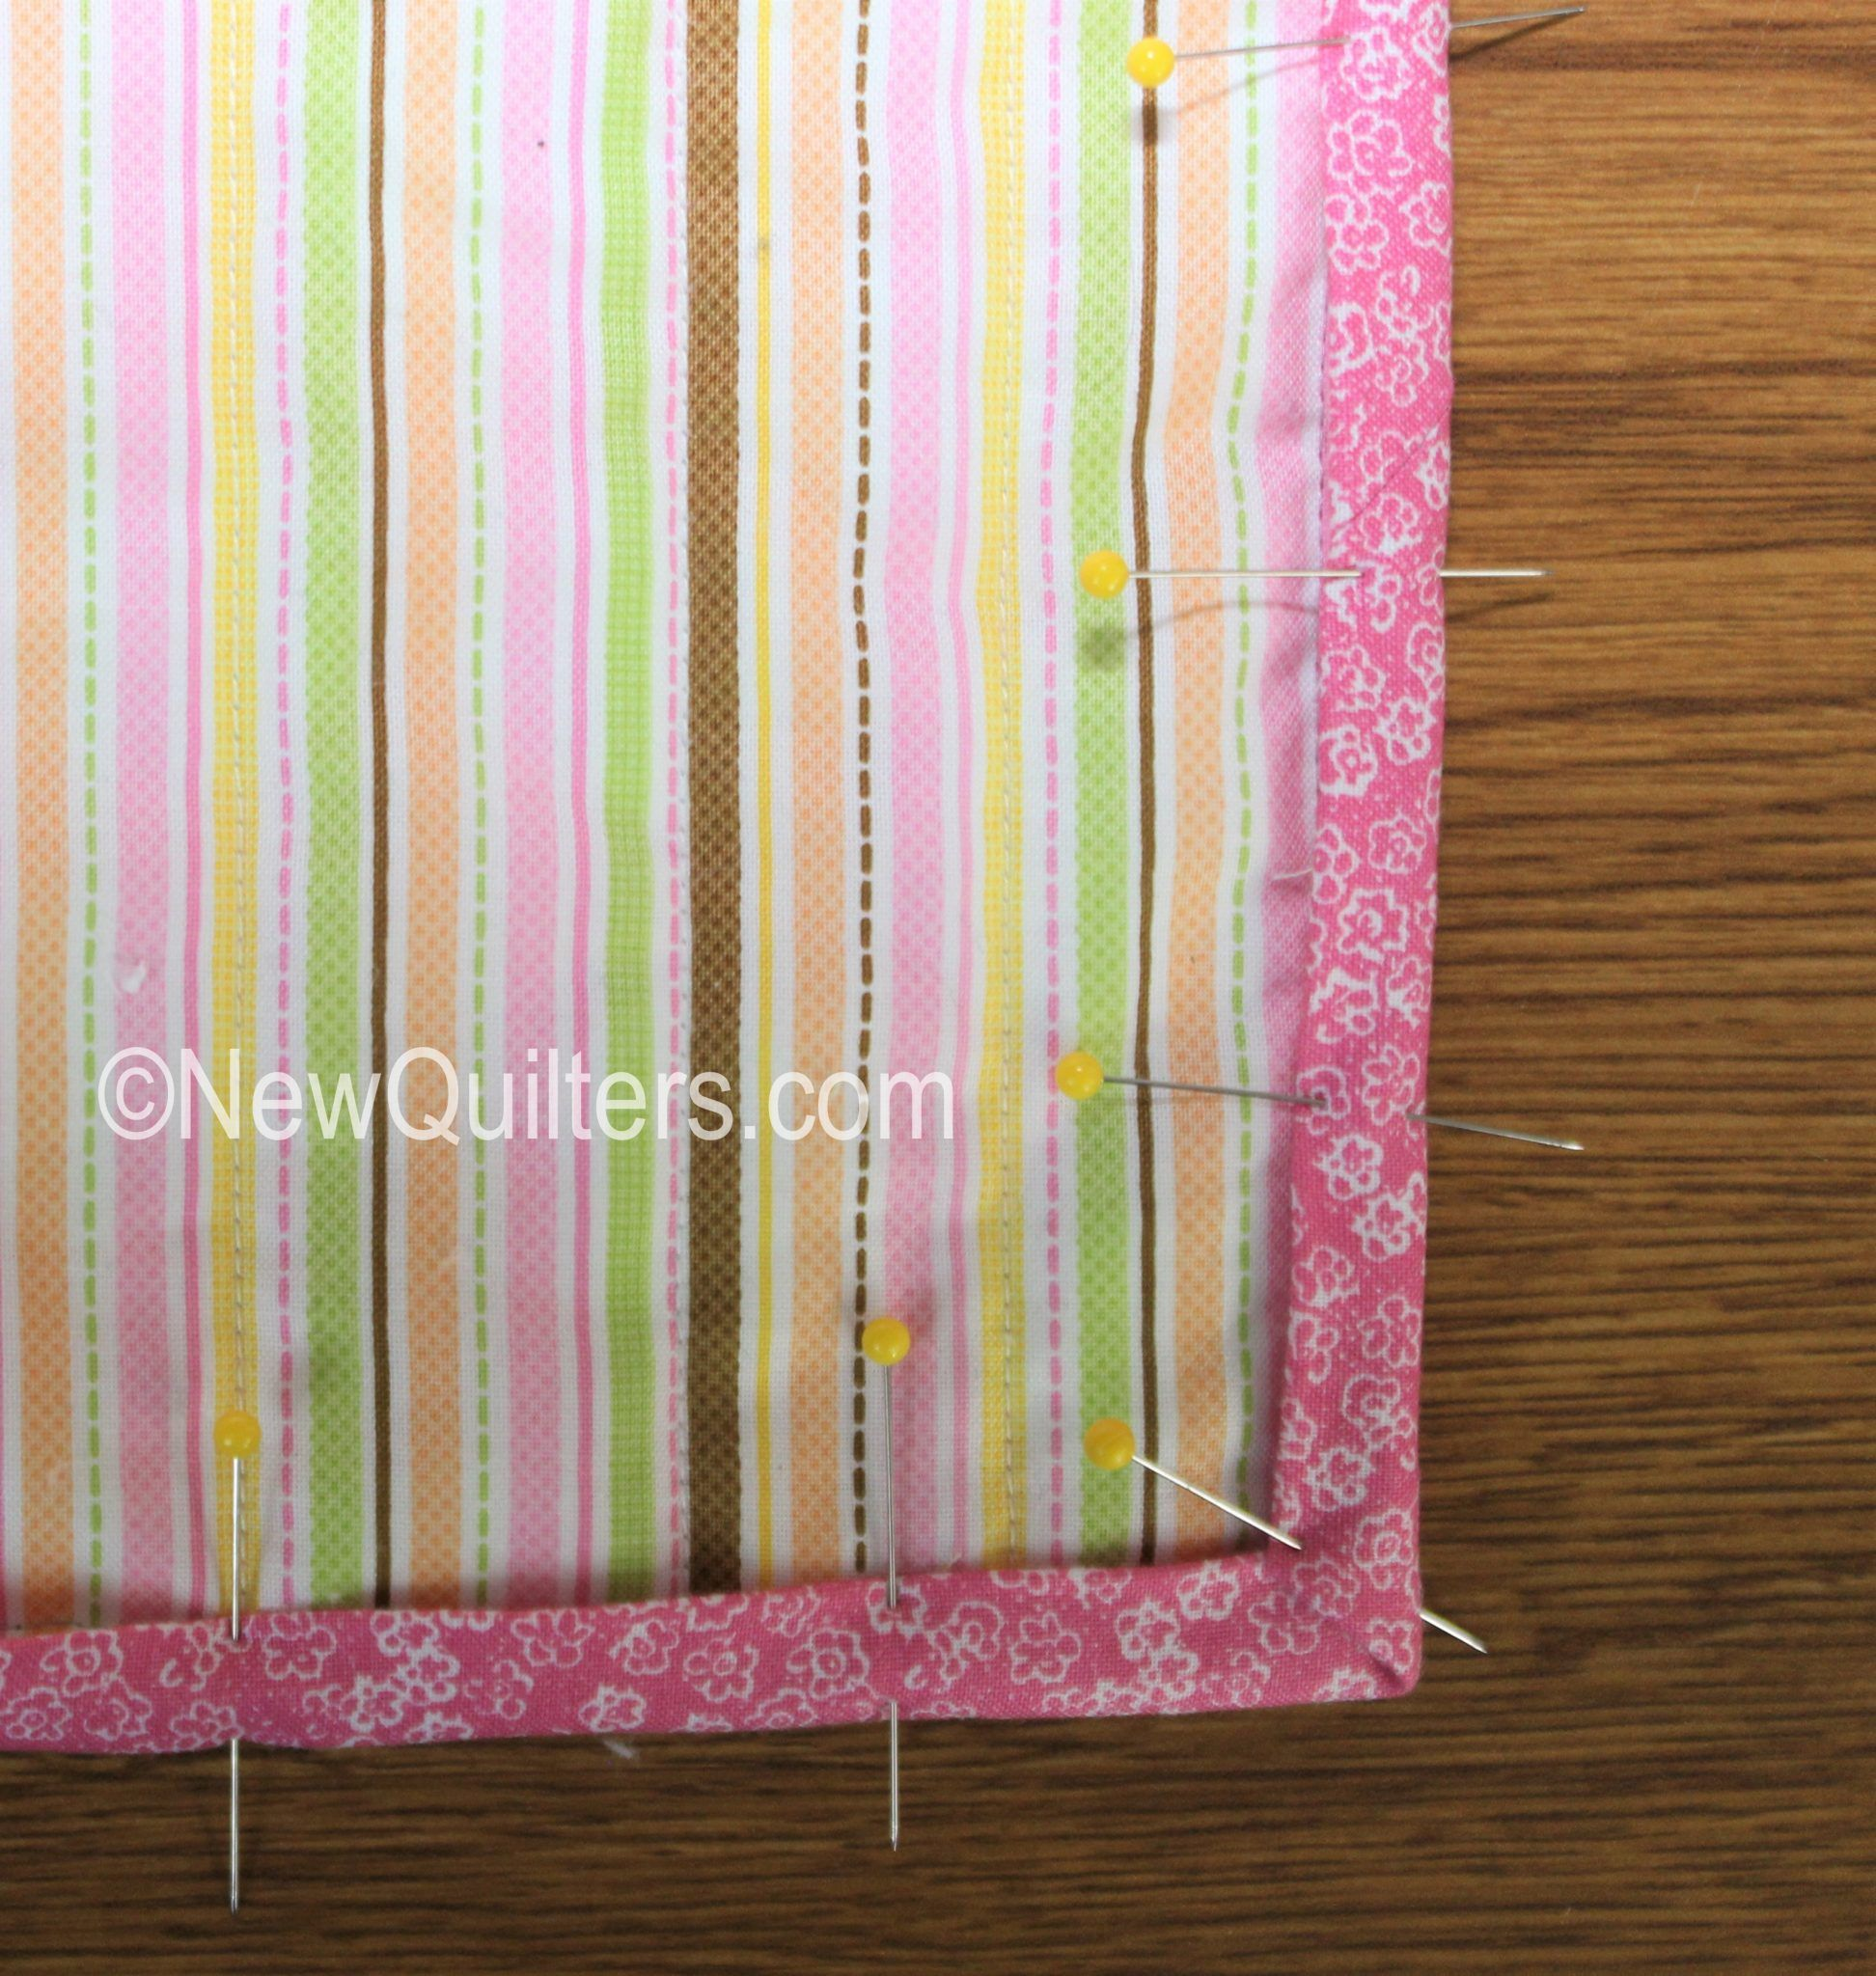 How To Machine Bind A Quilt (No Hand Sewing!)